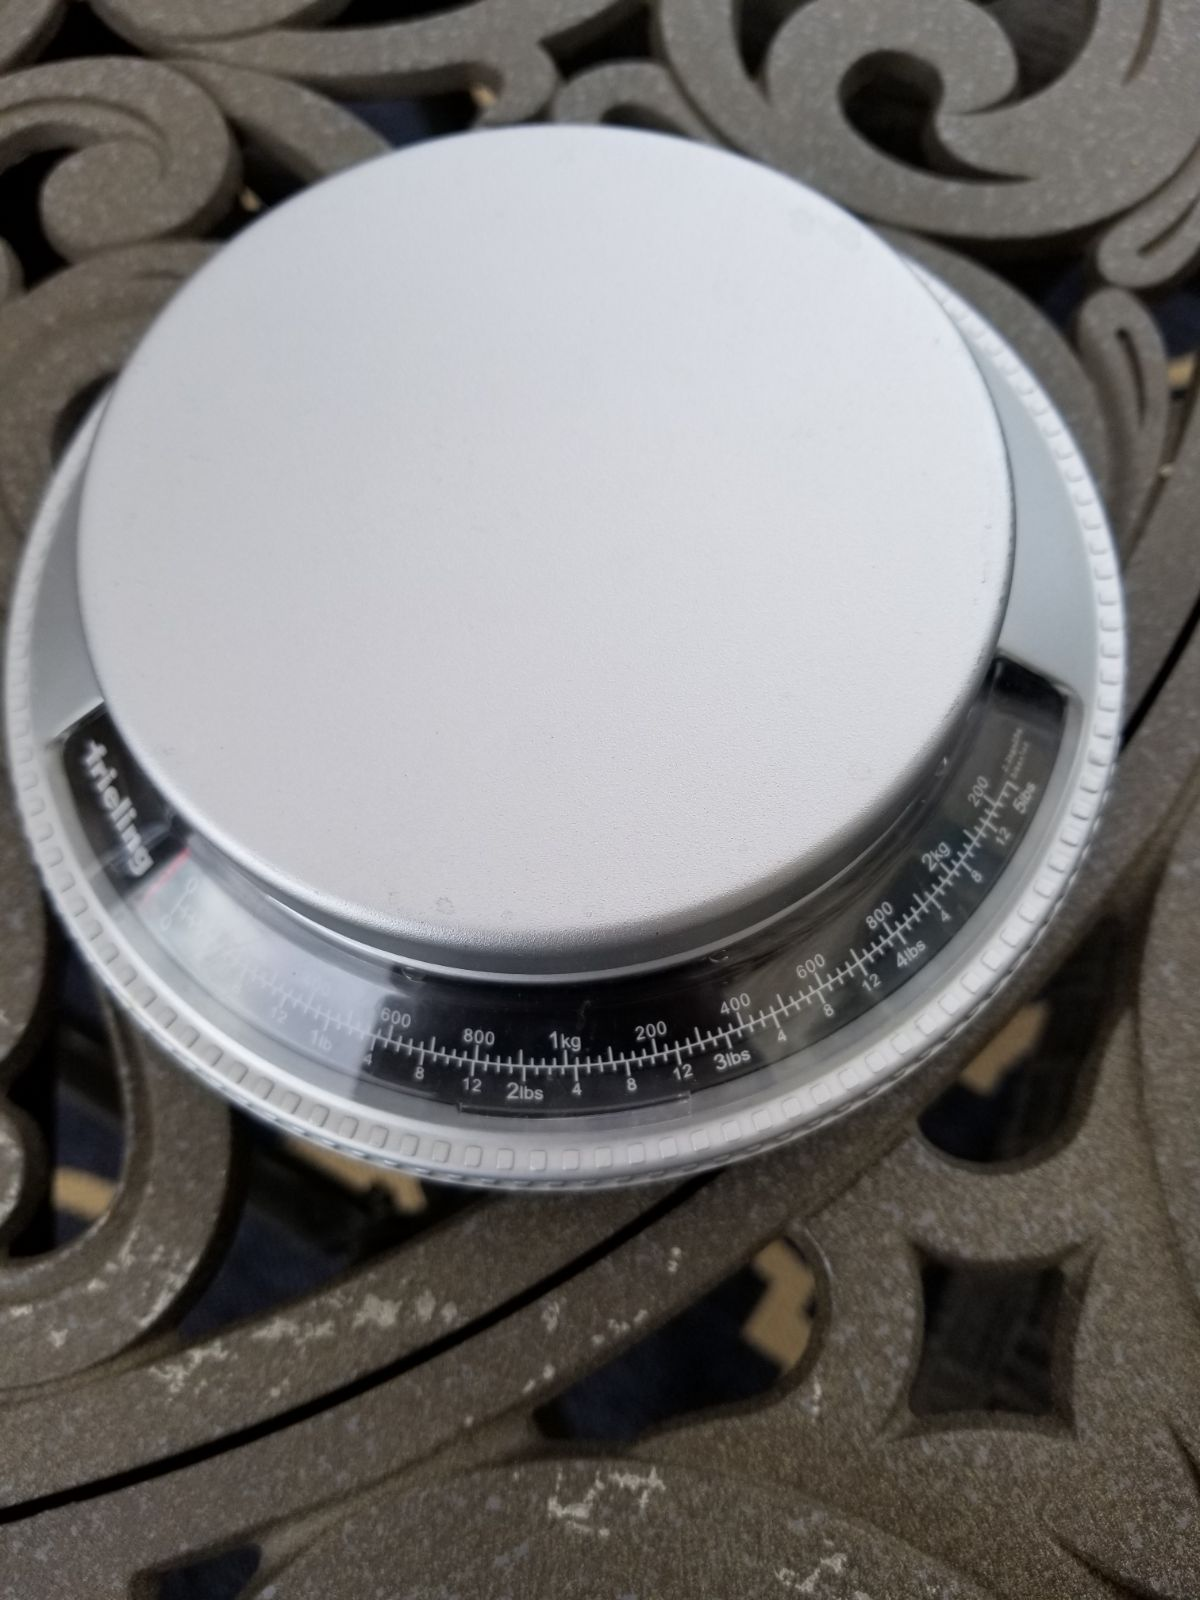 Kitchen scale with removable bowl